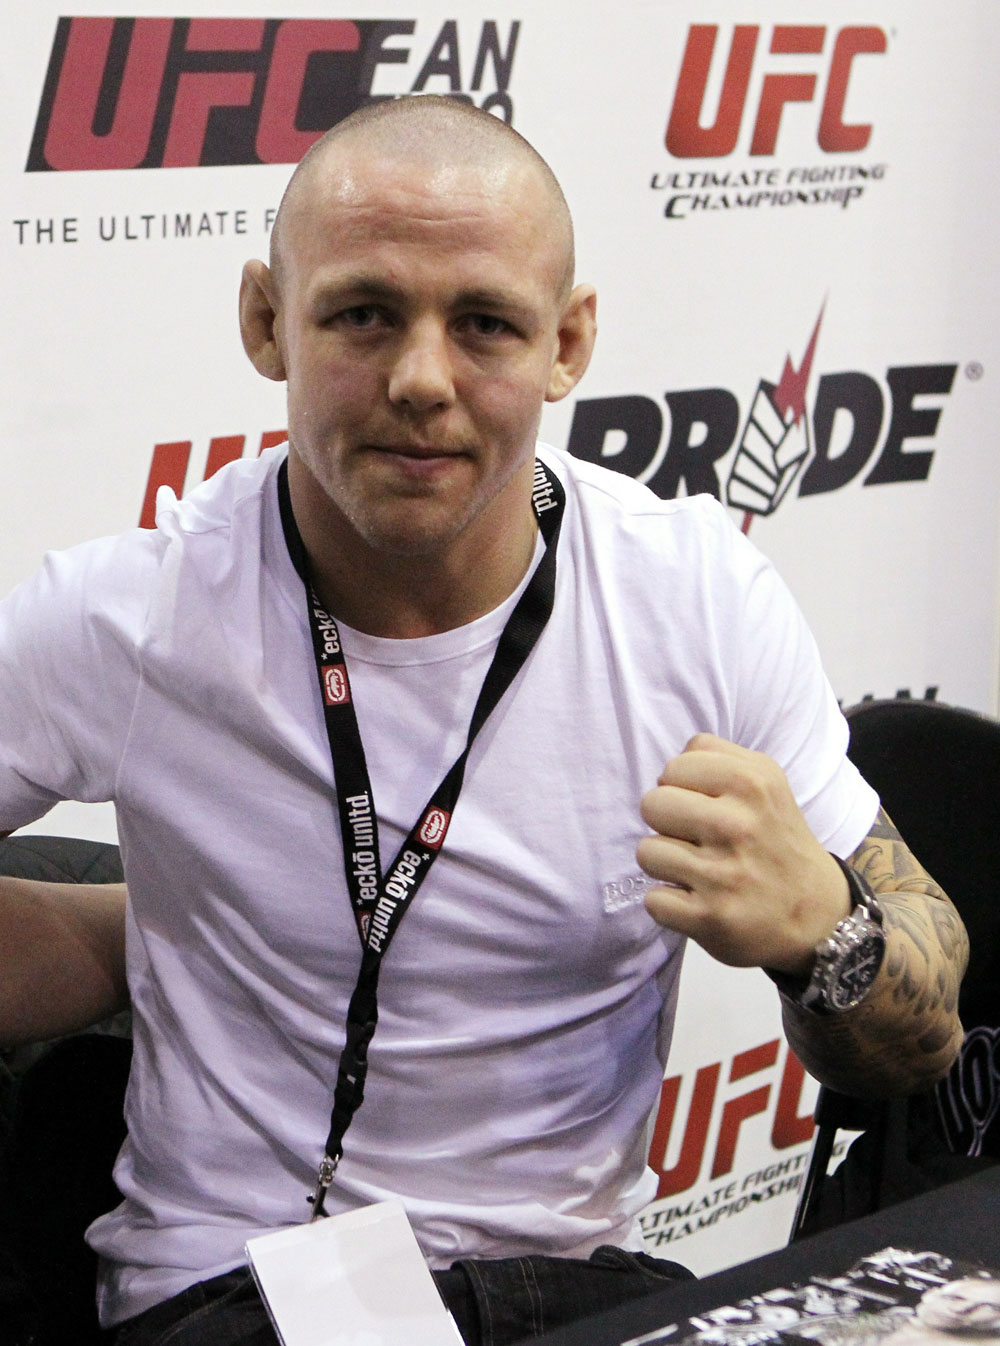 UFC Lightweight fighter Ross Pearson at the UFC Fan Expo.